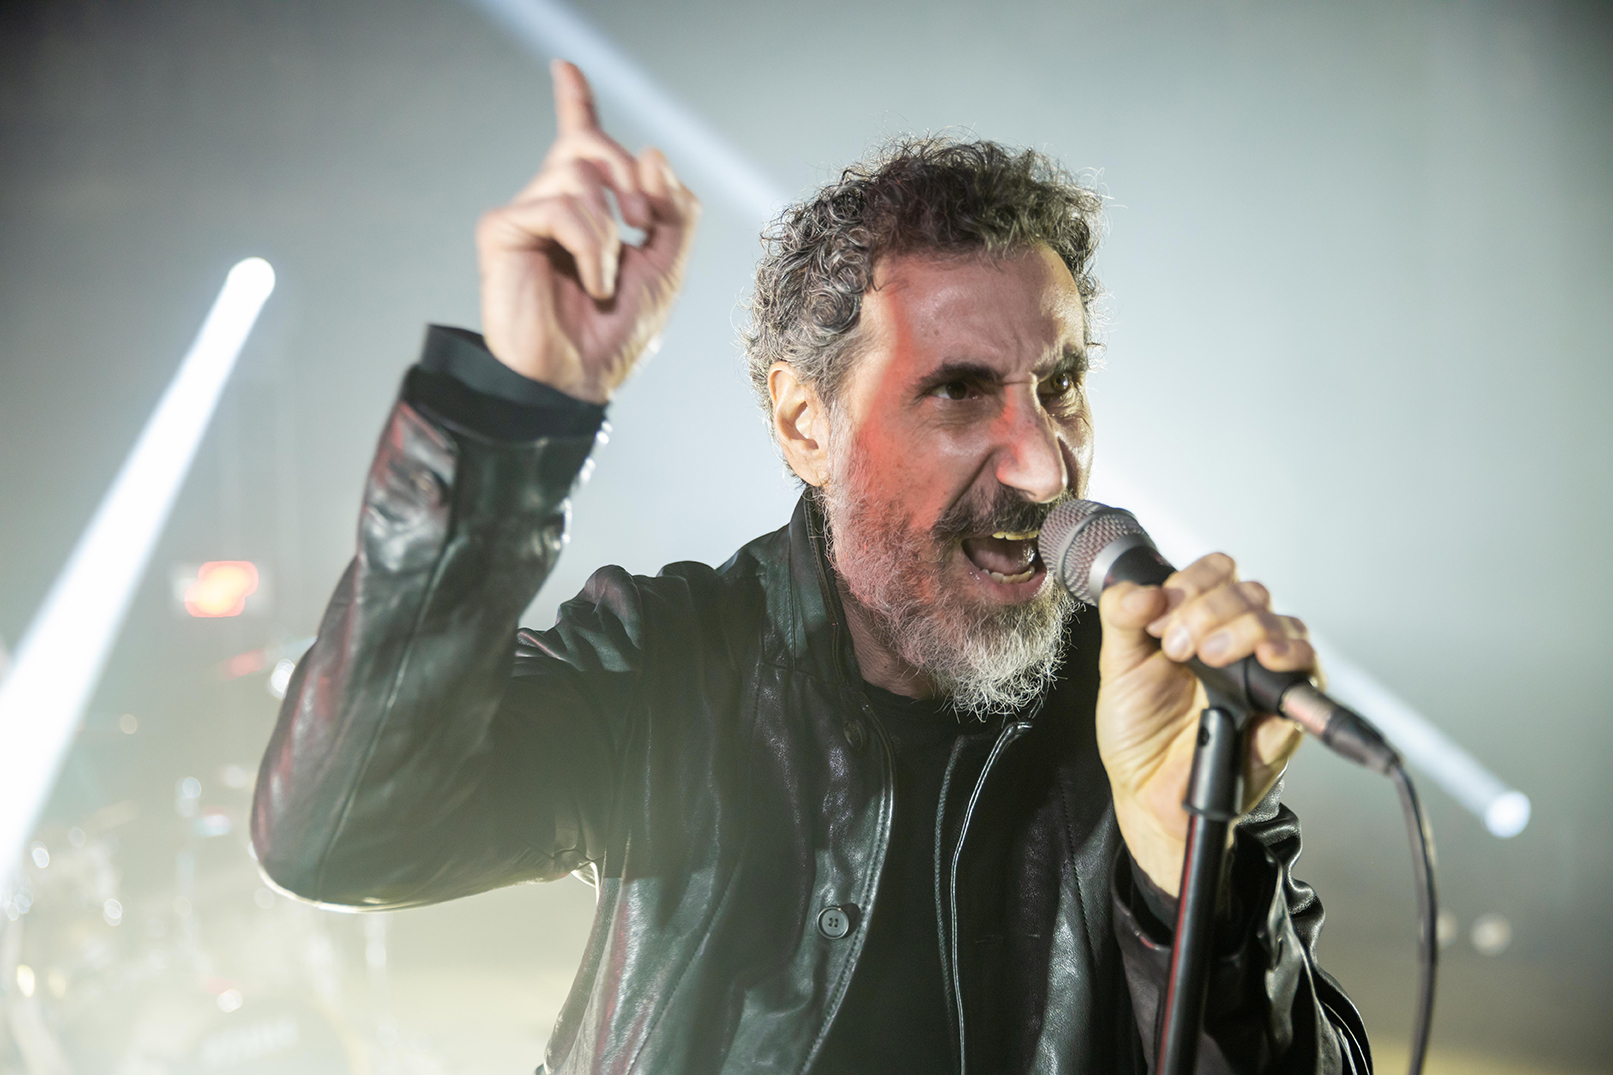 Serge Tankian does not allow himself to dictate to him